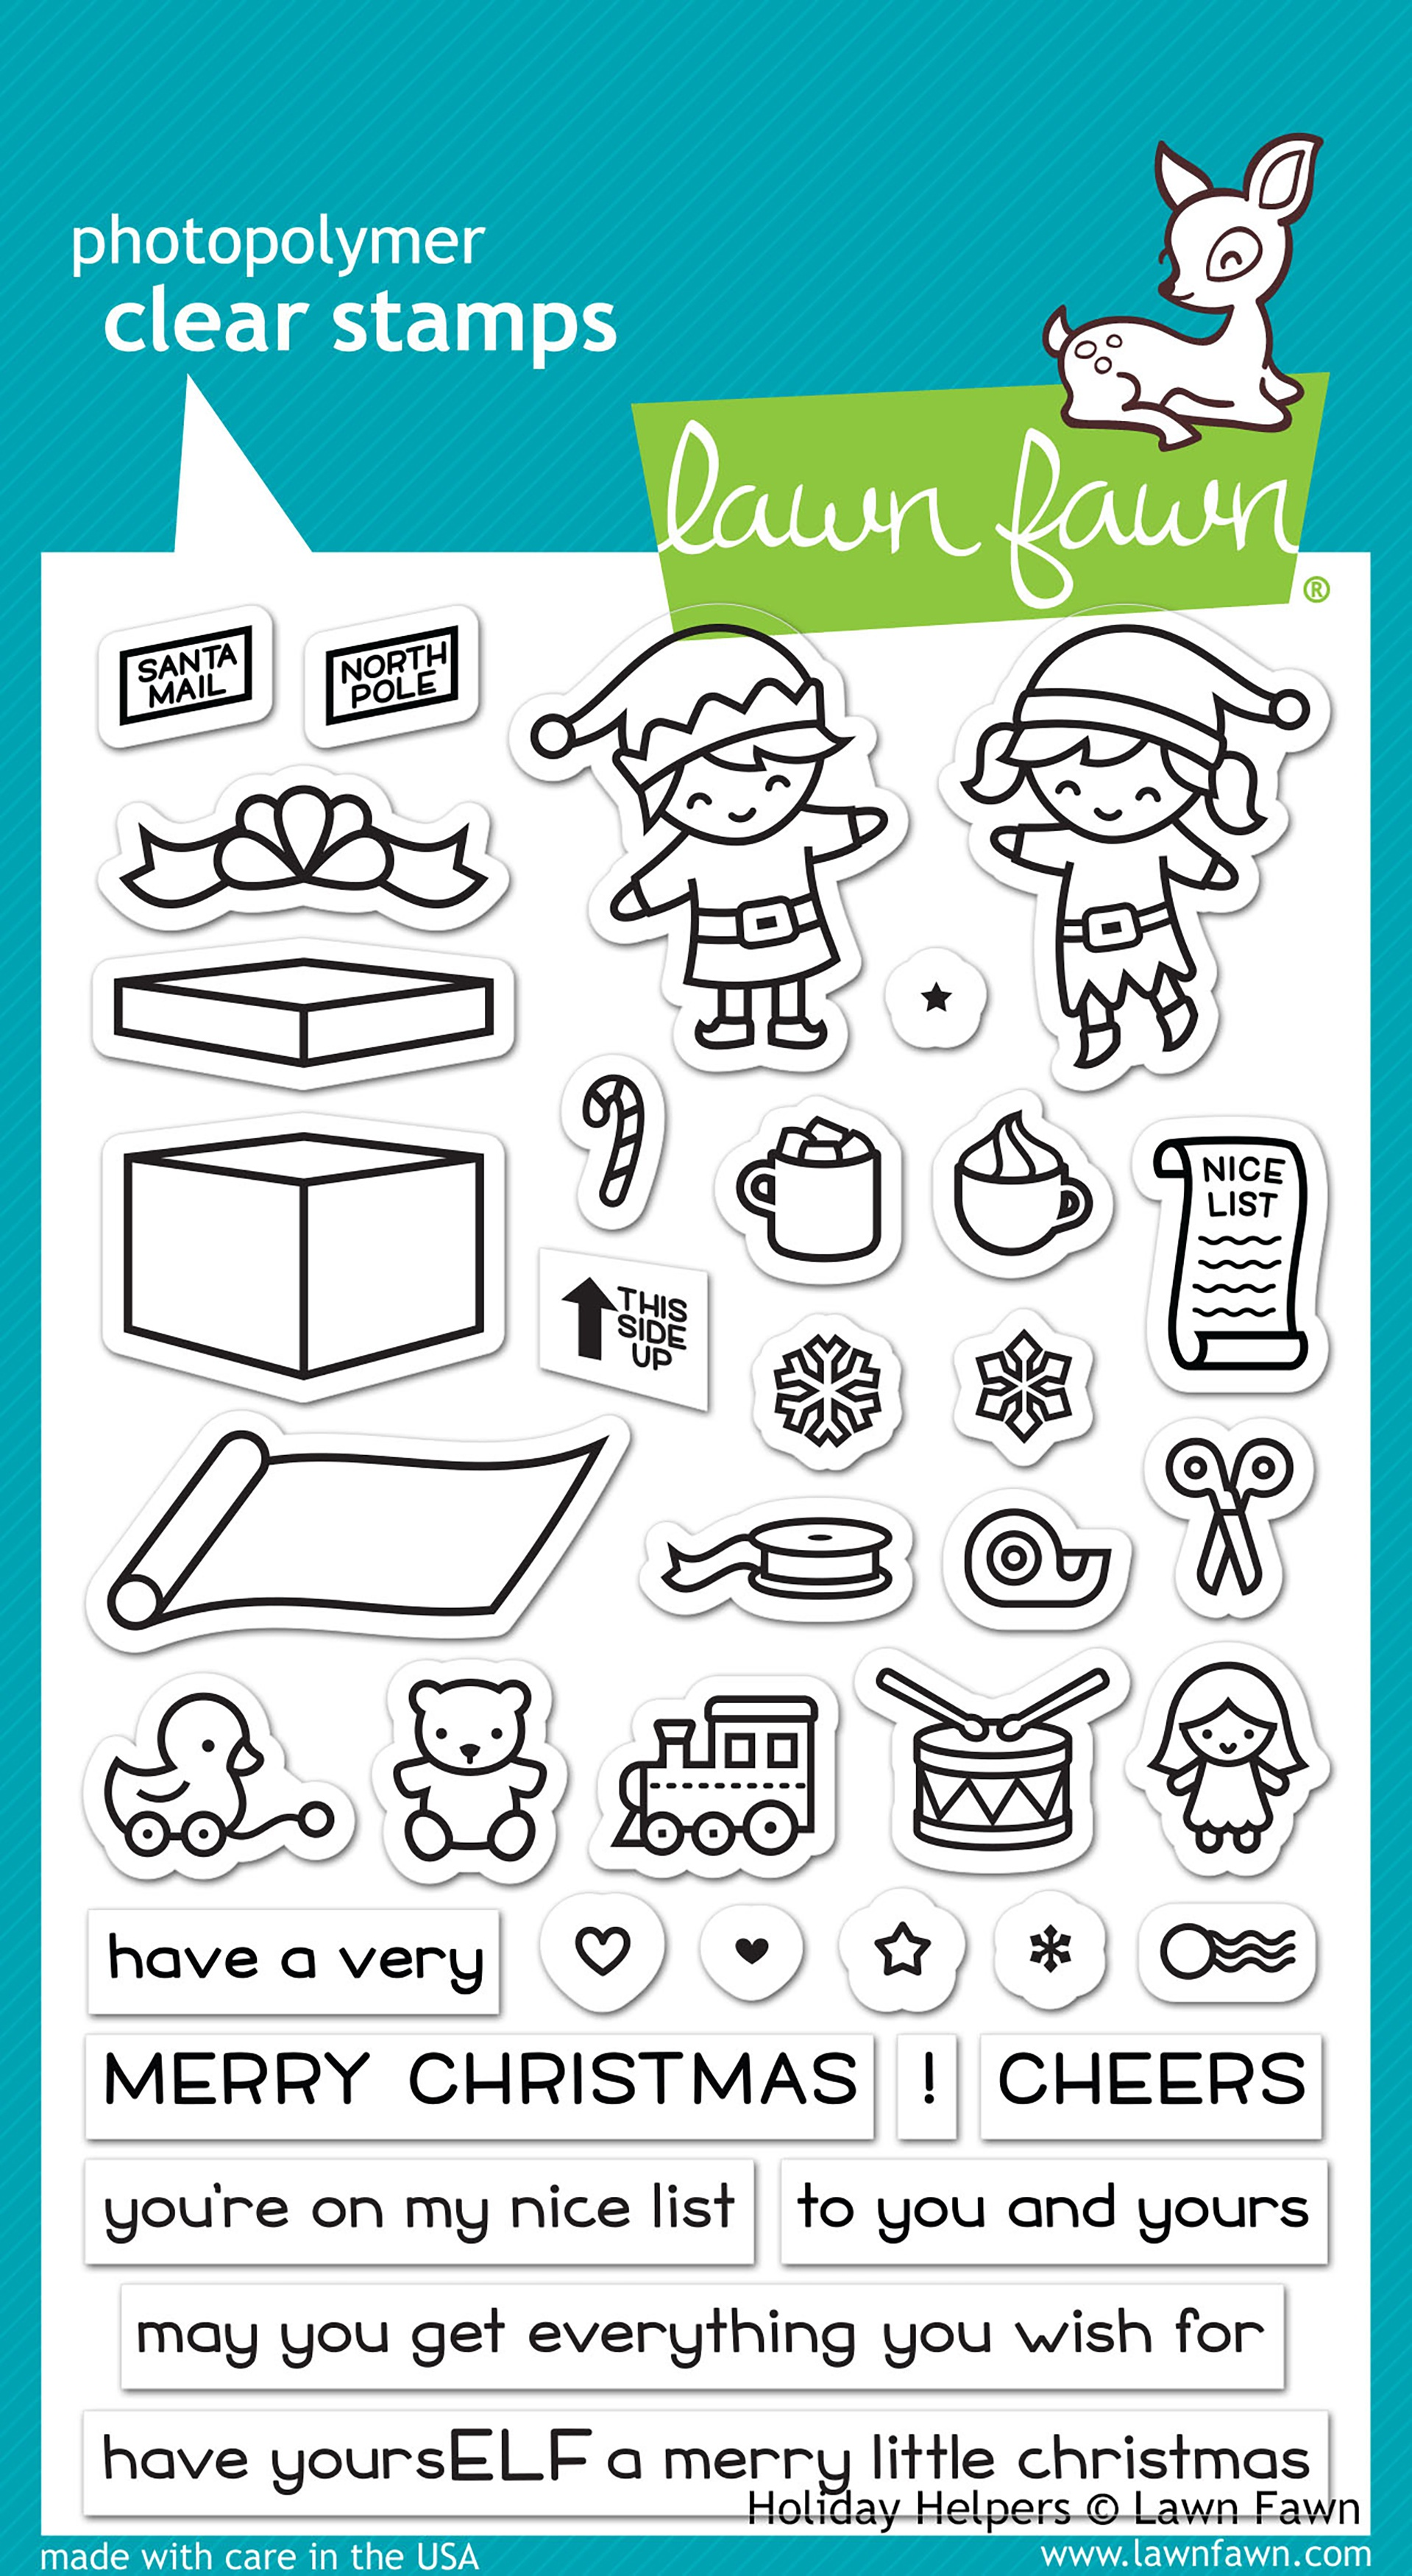 Lawn Fawn Clear Stamps 4X6-Holiday Helpers